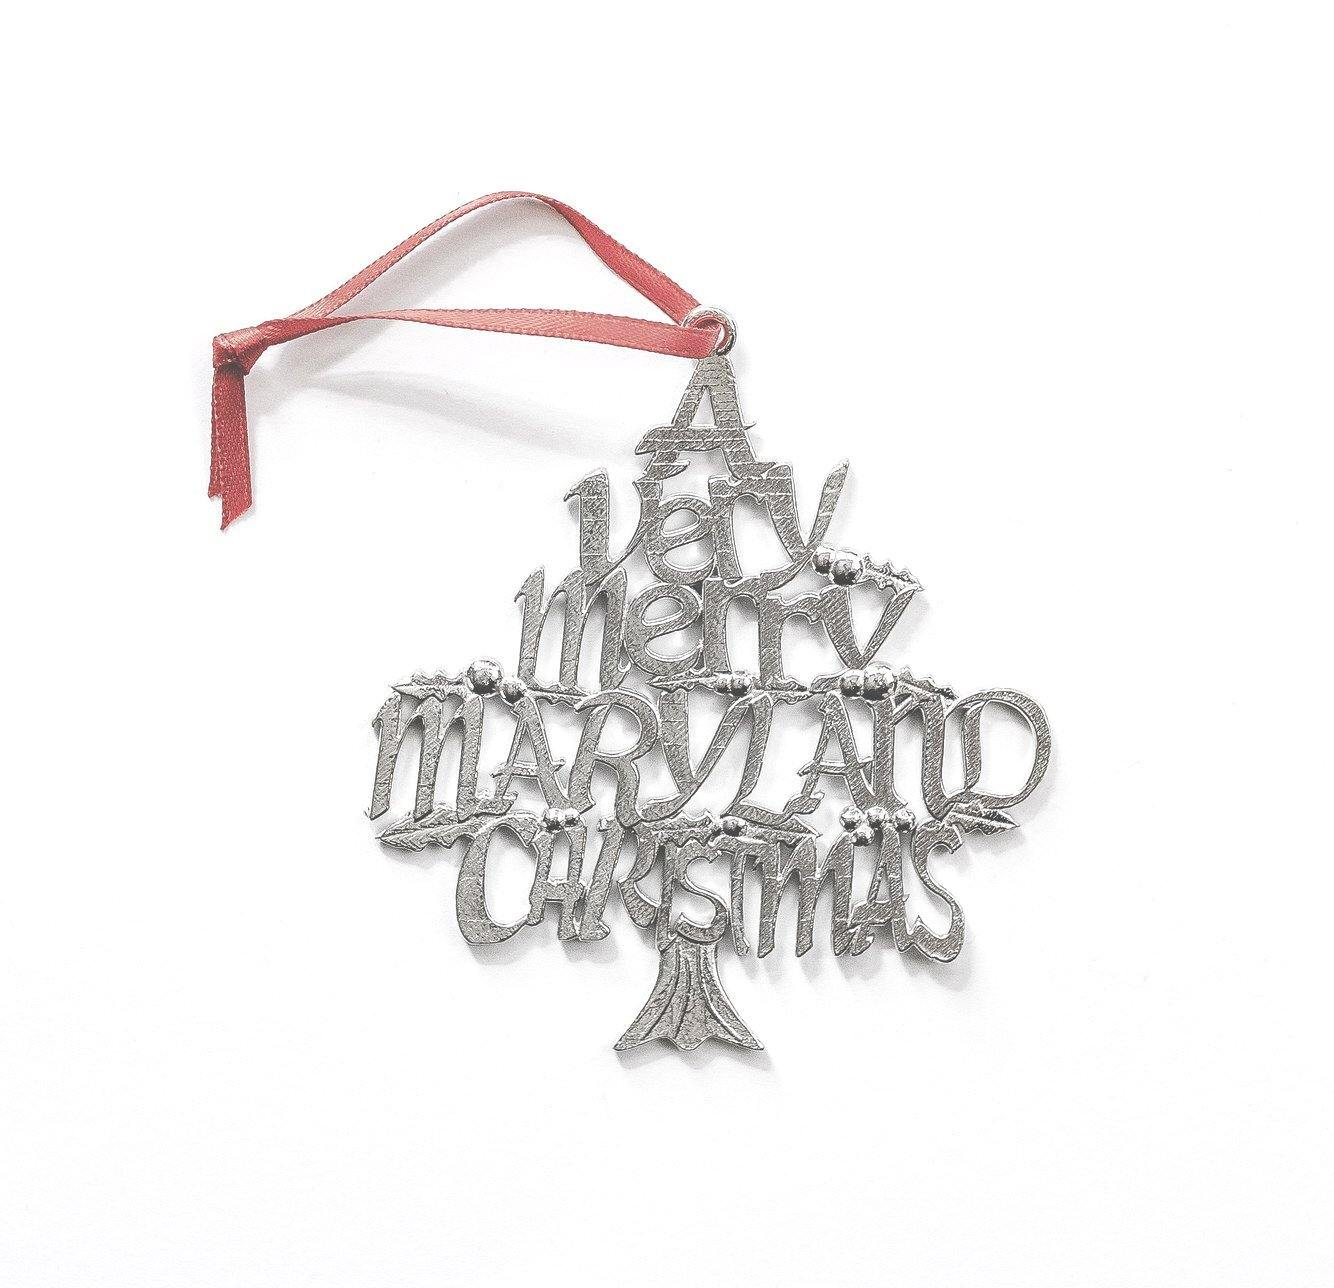 handmade maryland christmas ornament